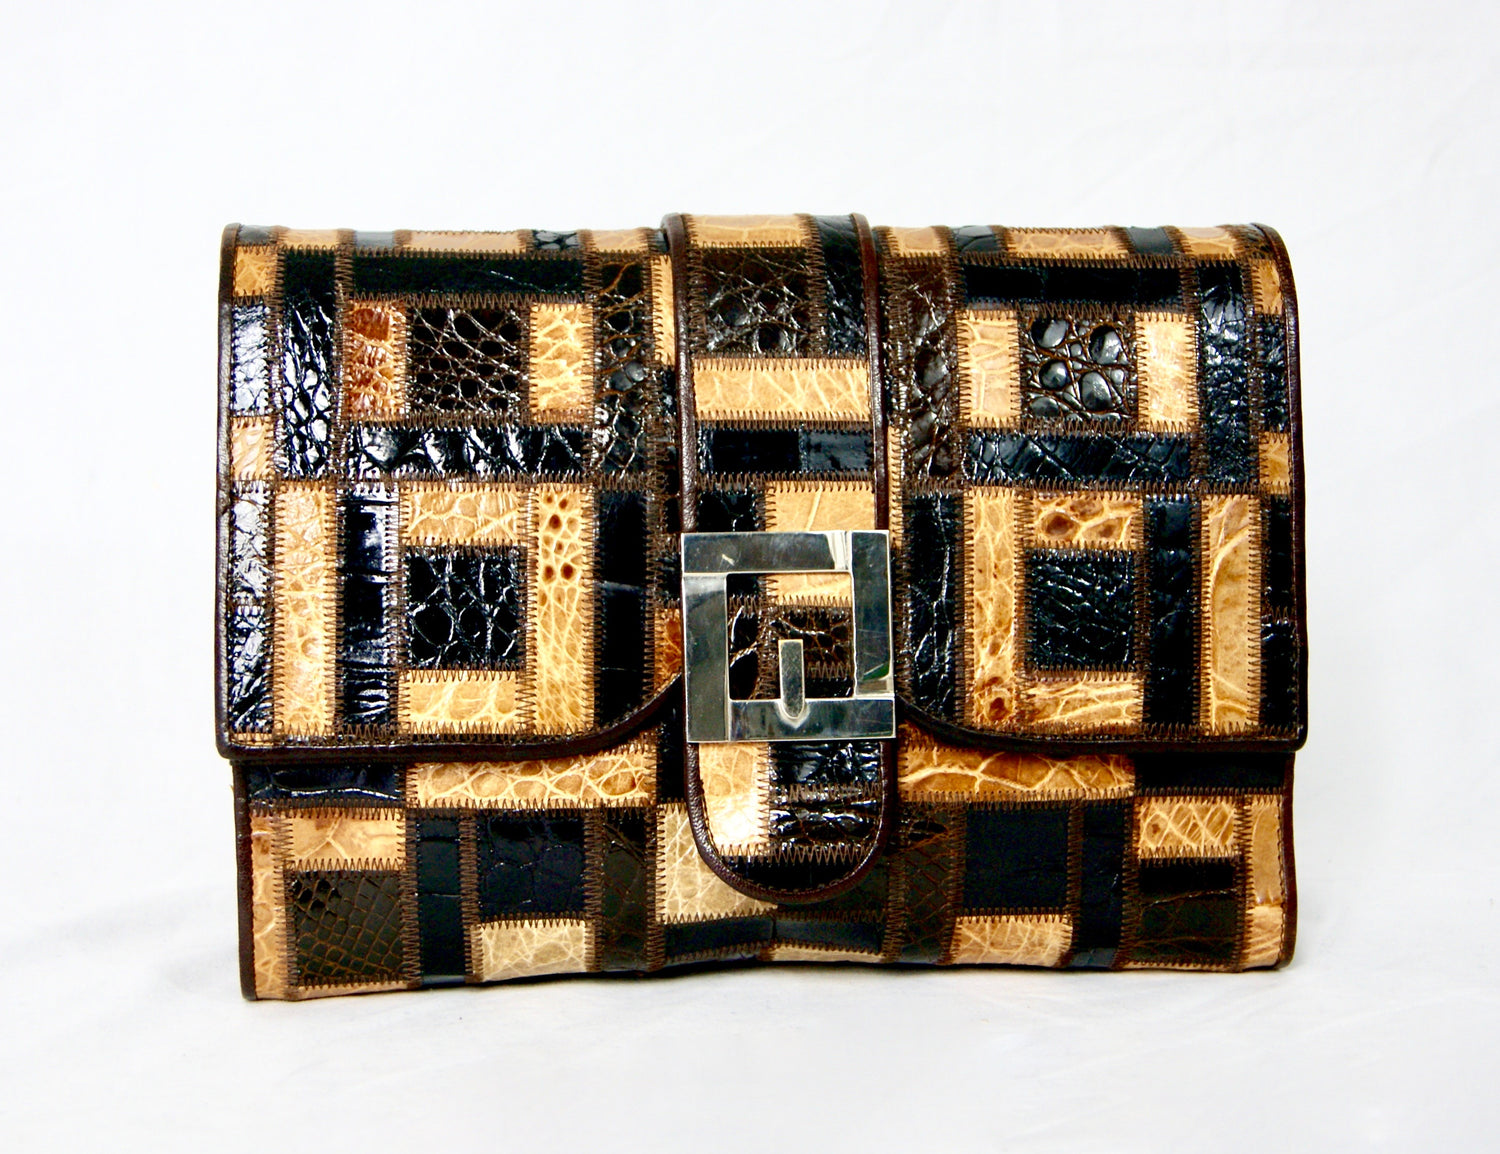 FIGLI DI ORFEO MACCHI Exotic Leather Vintage 1970s Crocodile Skin Patchwork Clutch Shoulder Bag